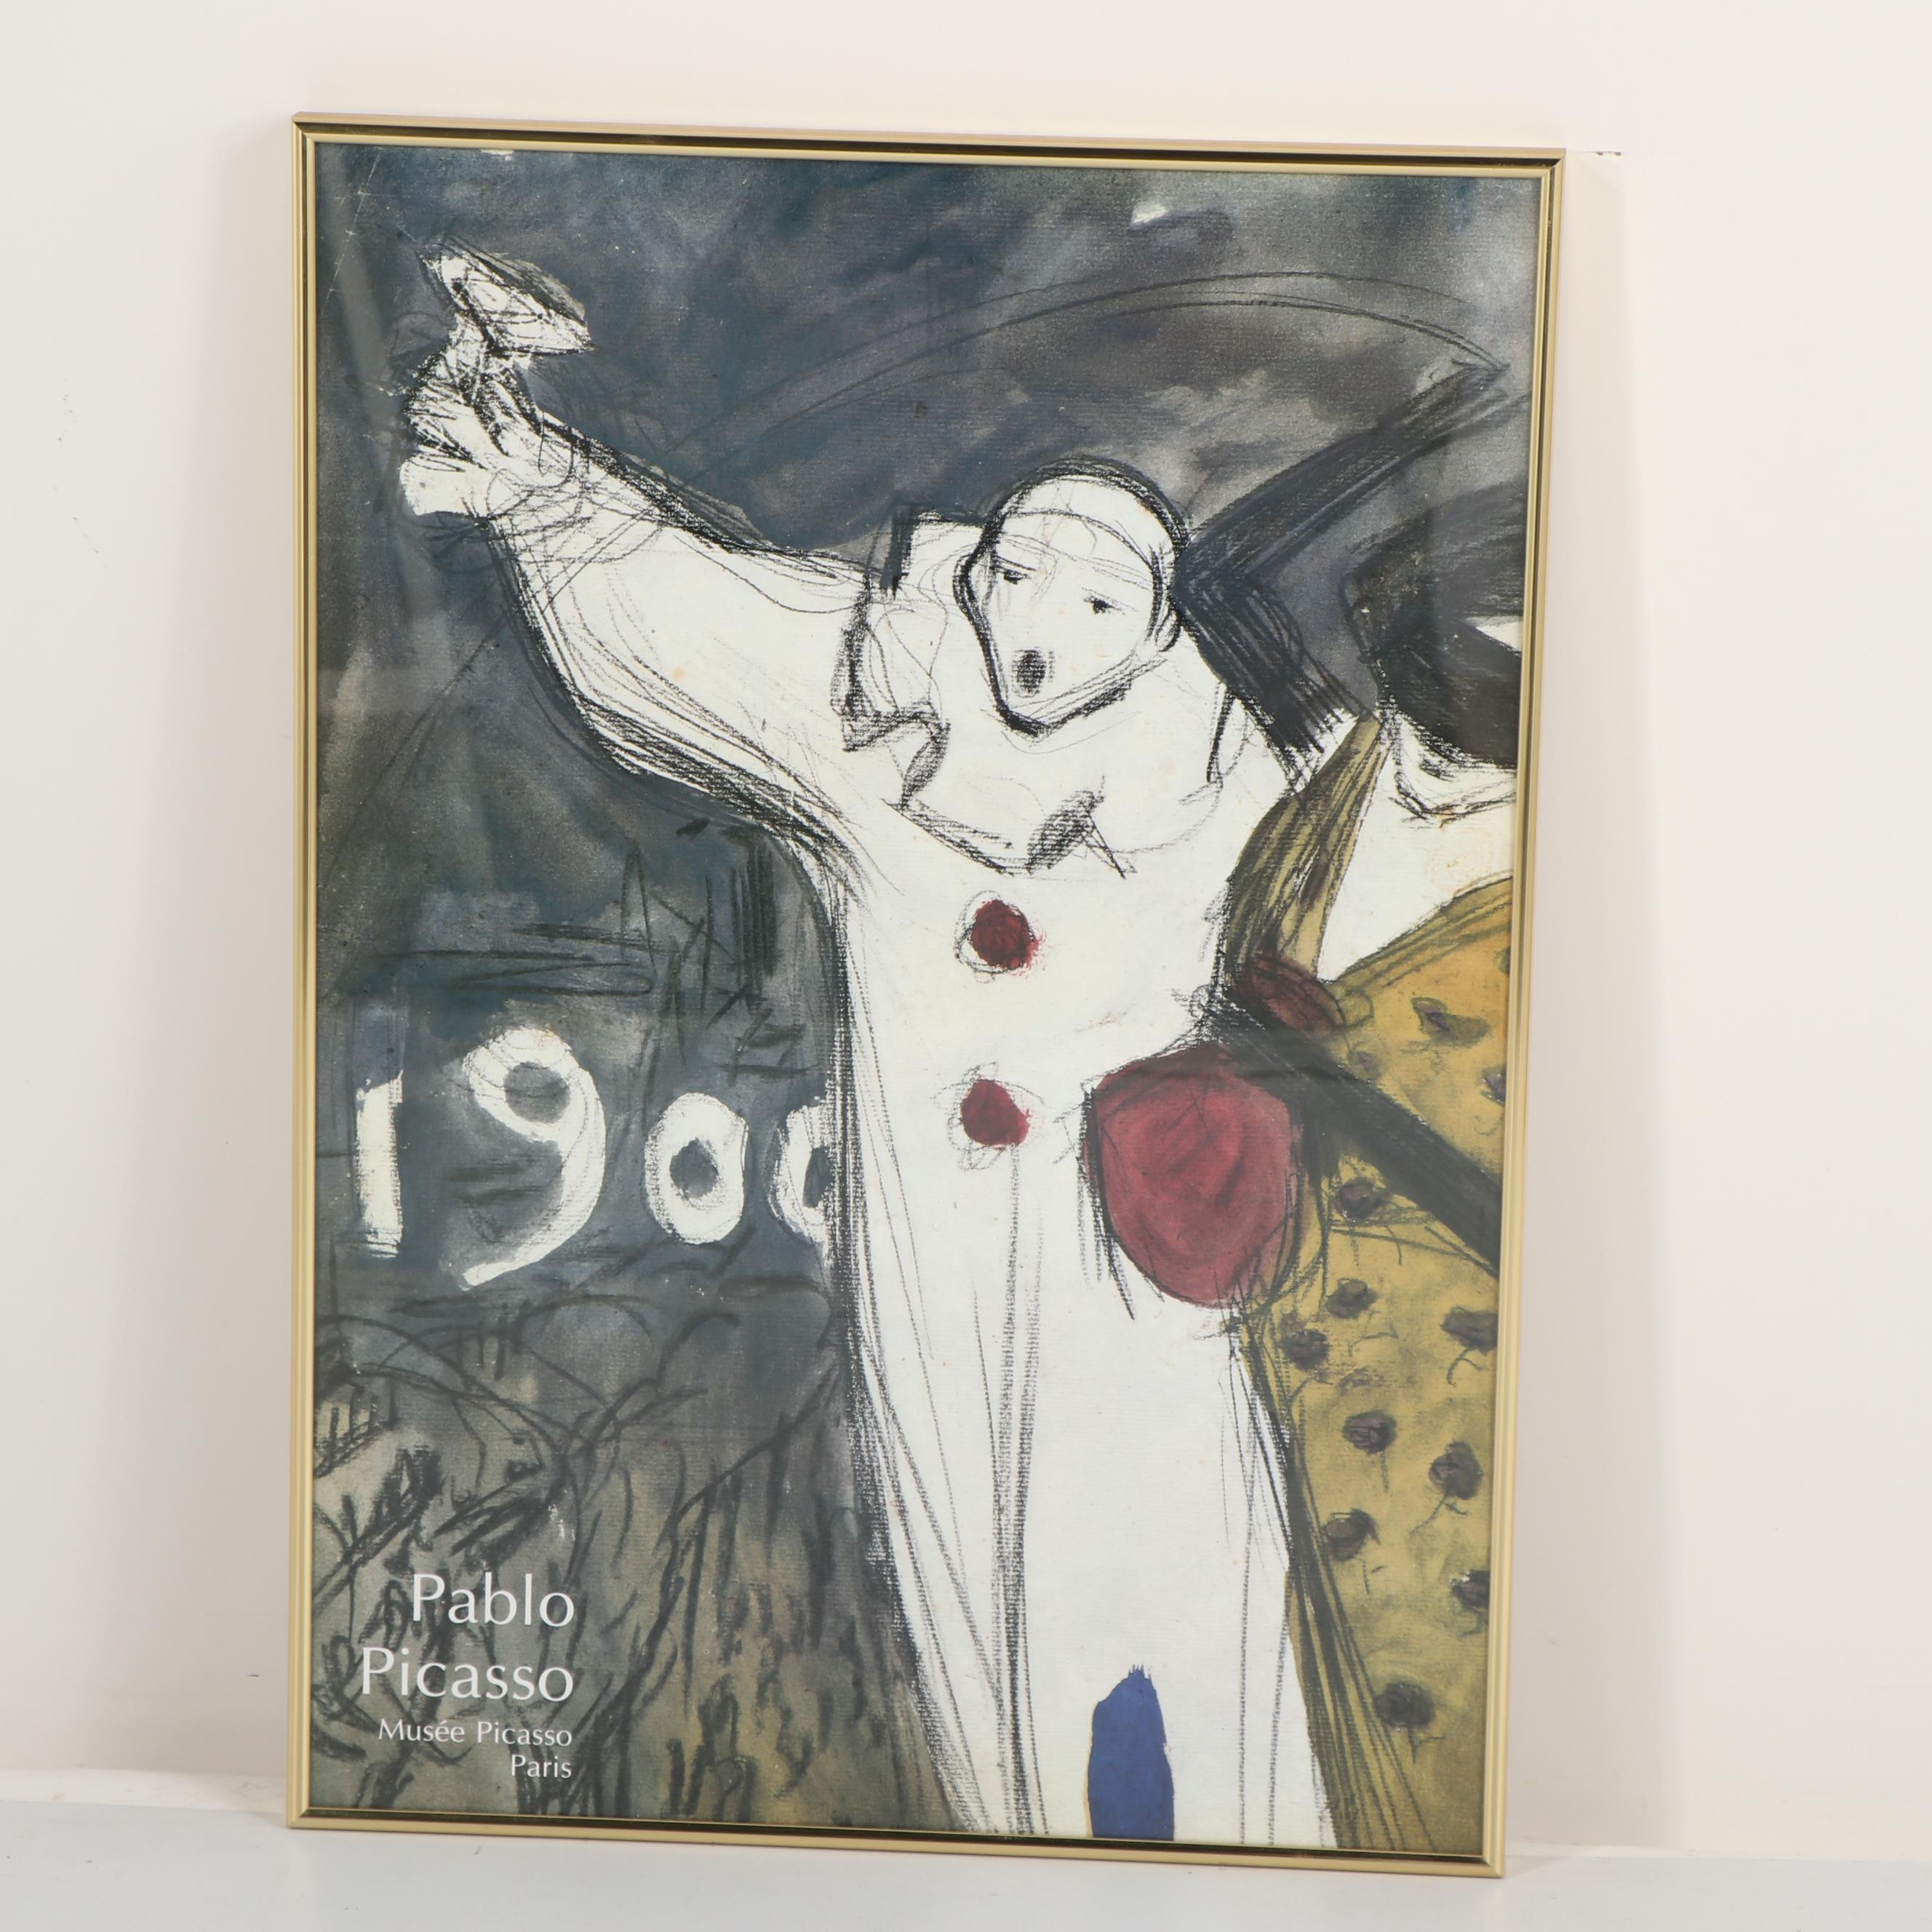 Musée Picasso Offset Lithograph Poster after Pablo Picasso